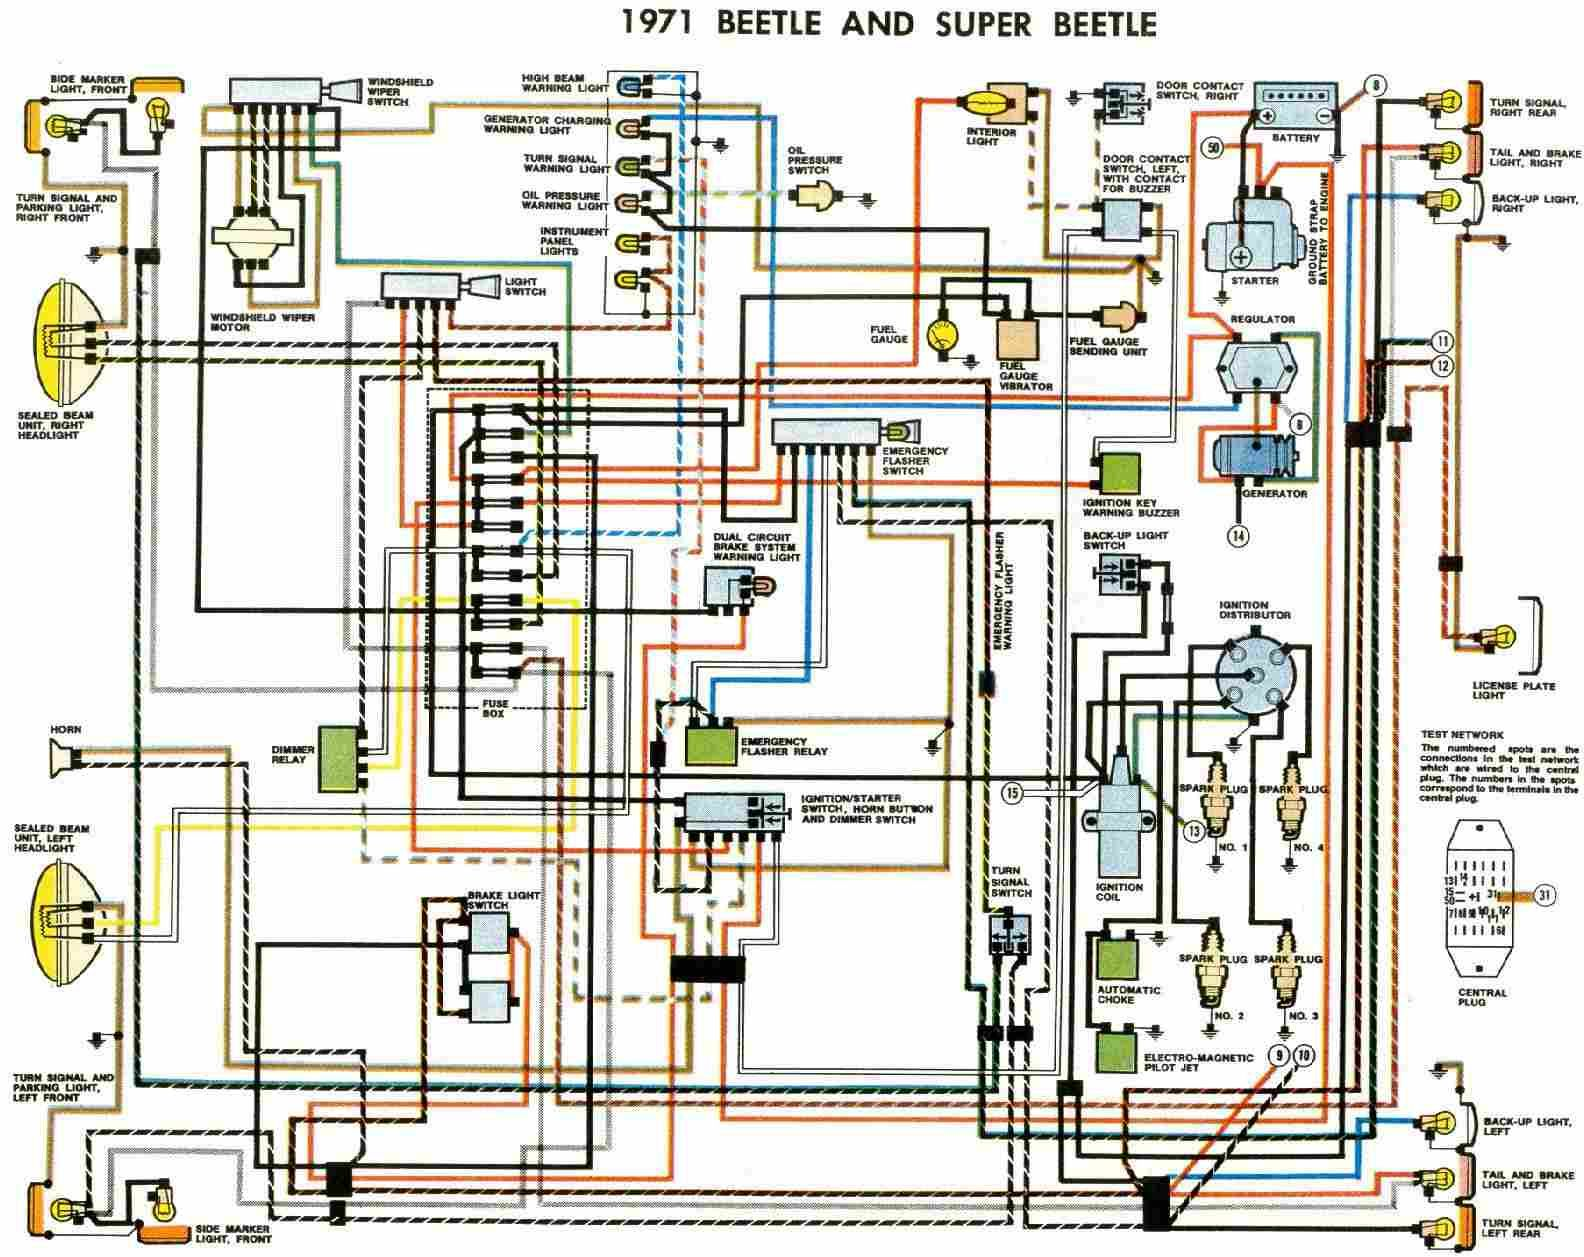 free auto wiring diagram 1971 vw beetle and super beetle wiring rh pinterest com 1971 vw beetle starter wiring diagram 1972 vw beetle wiring diagram